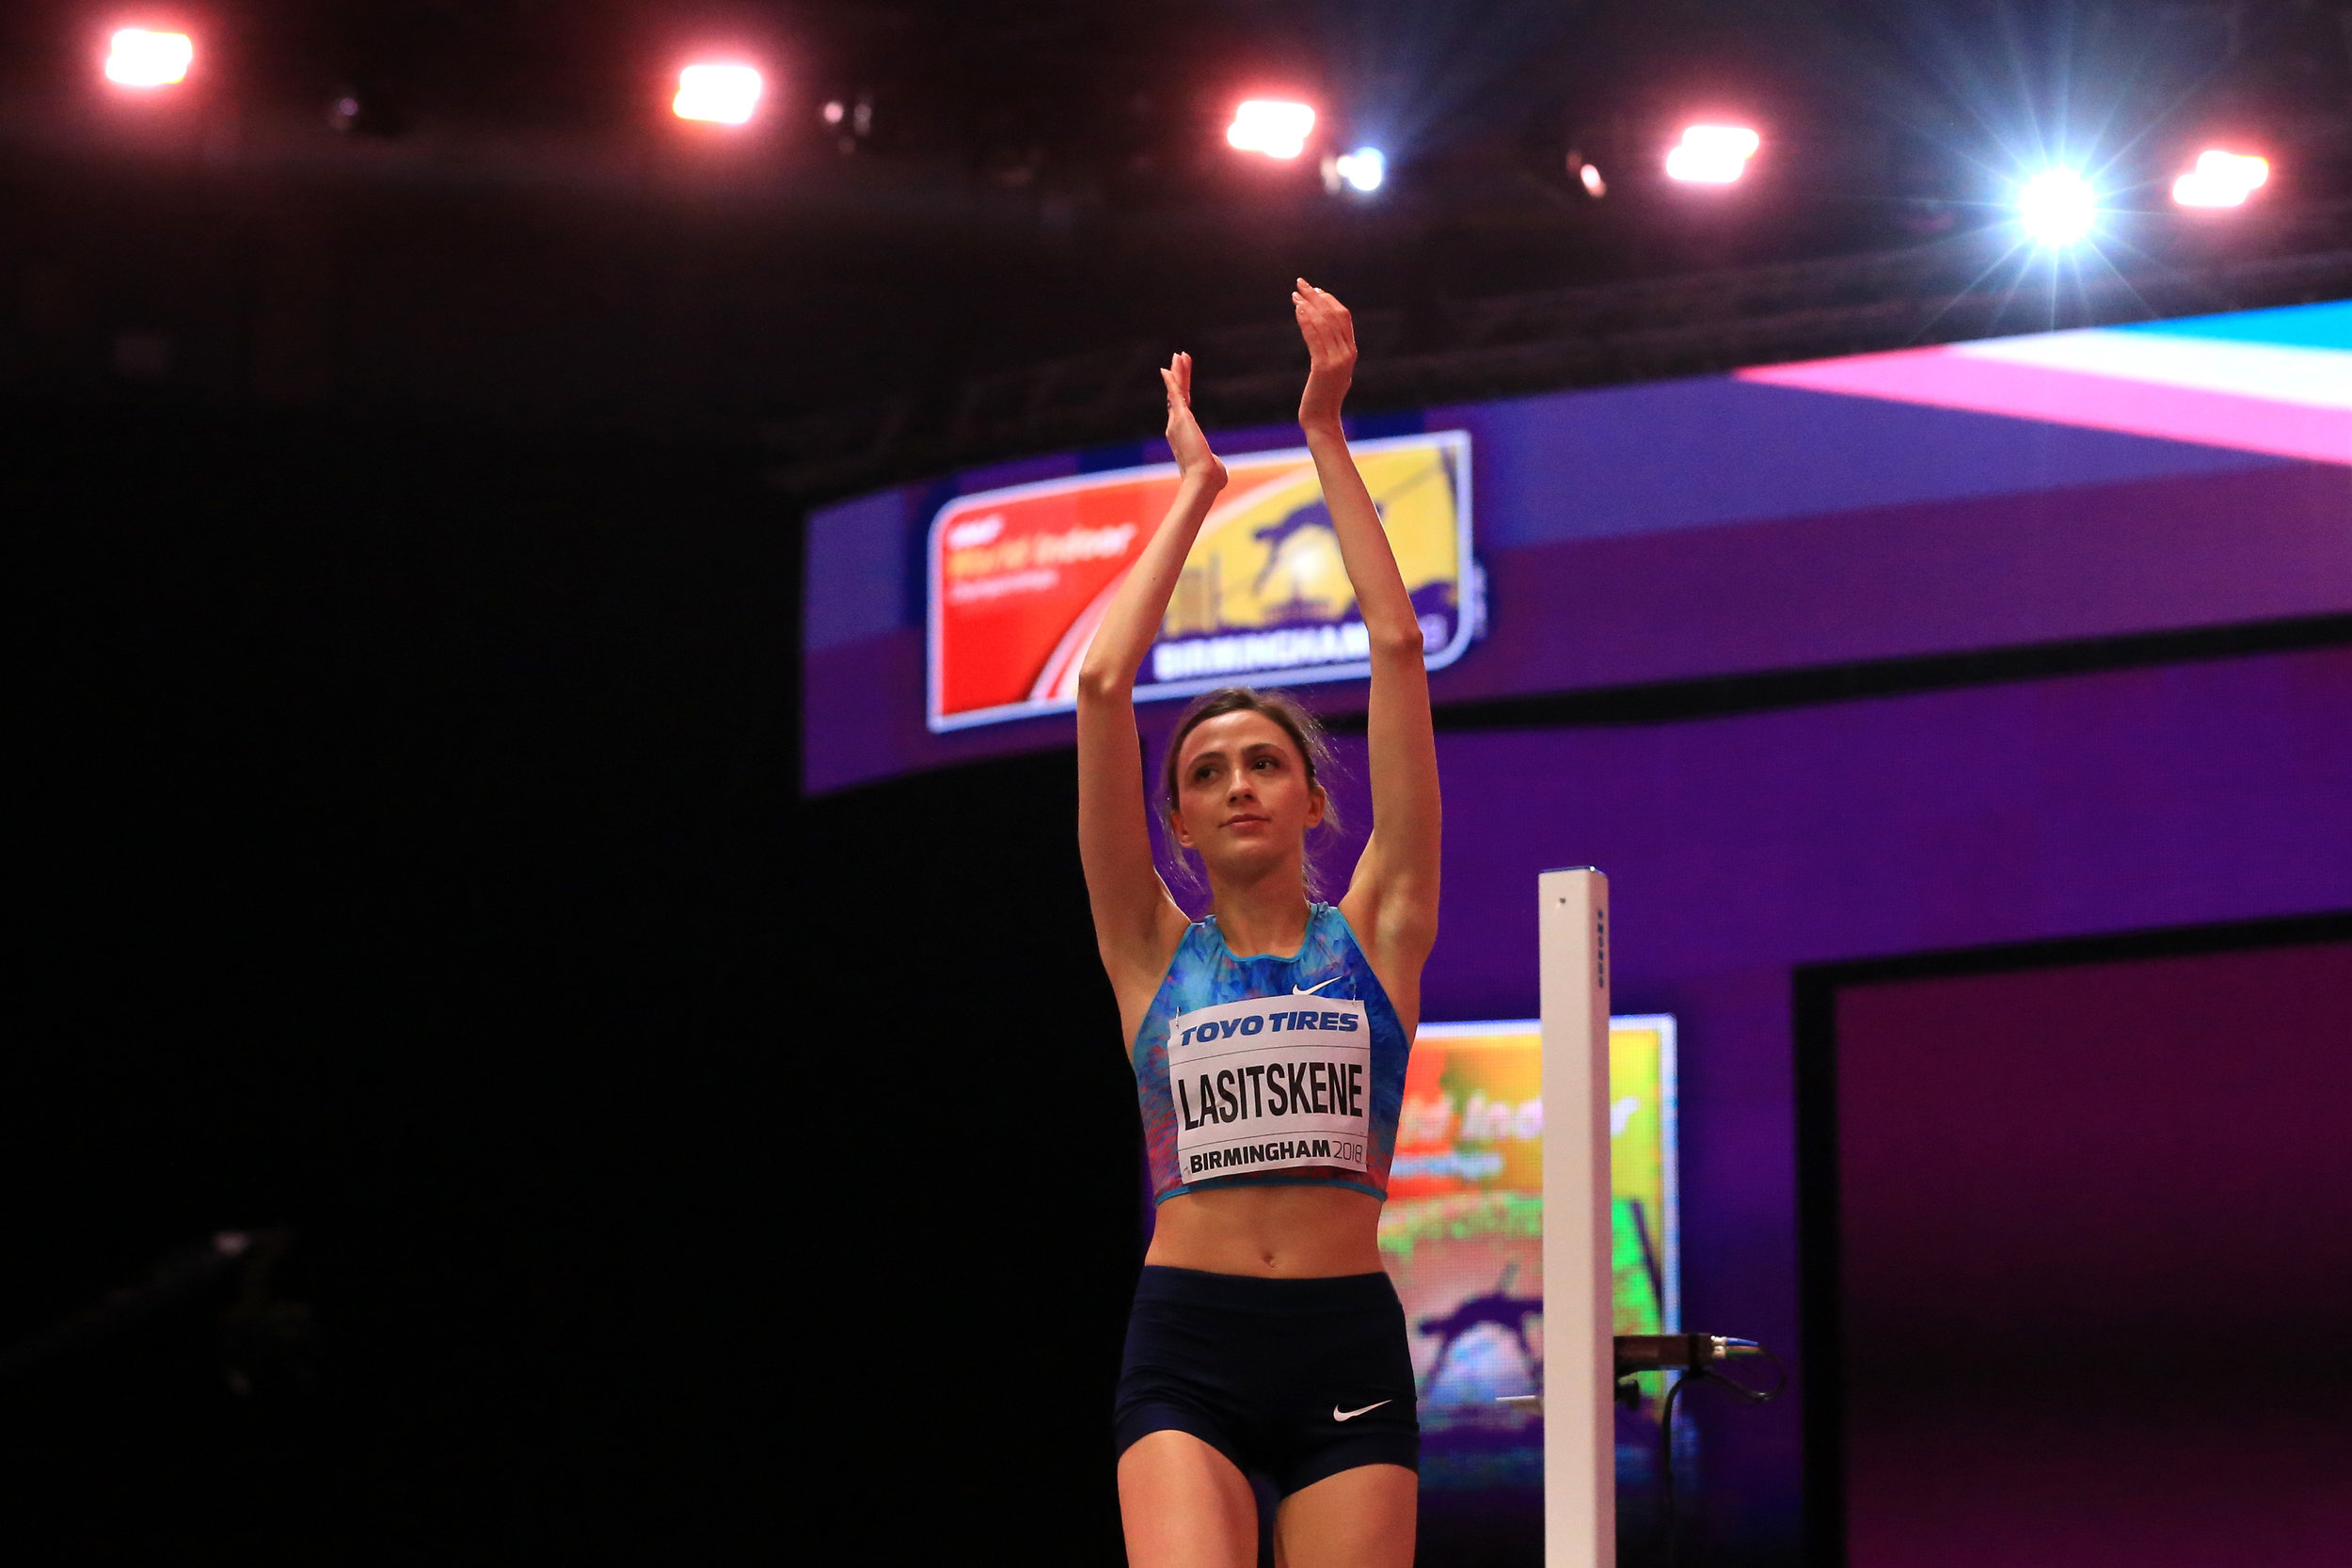 'Authorized Neutral Athlete' Mariya Lasitskene after winning Thursday's women's high jump aat the world indoor track and field championships //Stephen Pond/Getty Images for IAAF